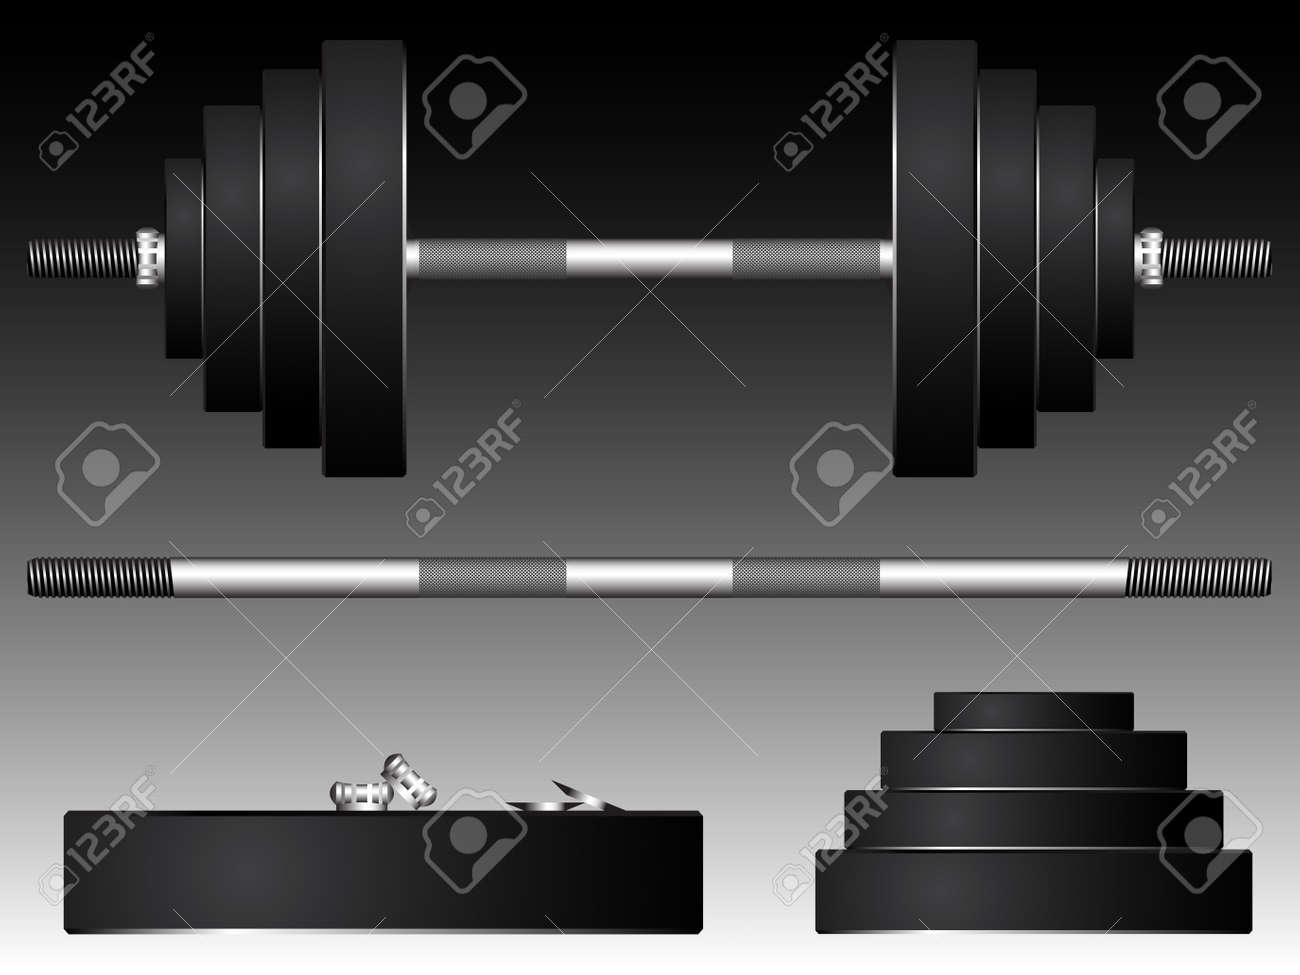 heavy weights, abstract art illustration Stock Vector - 12480653